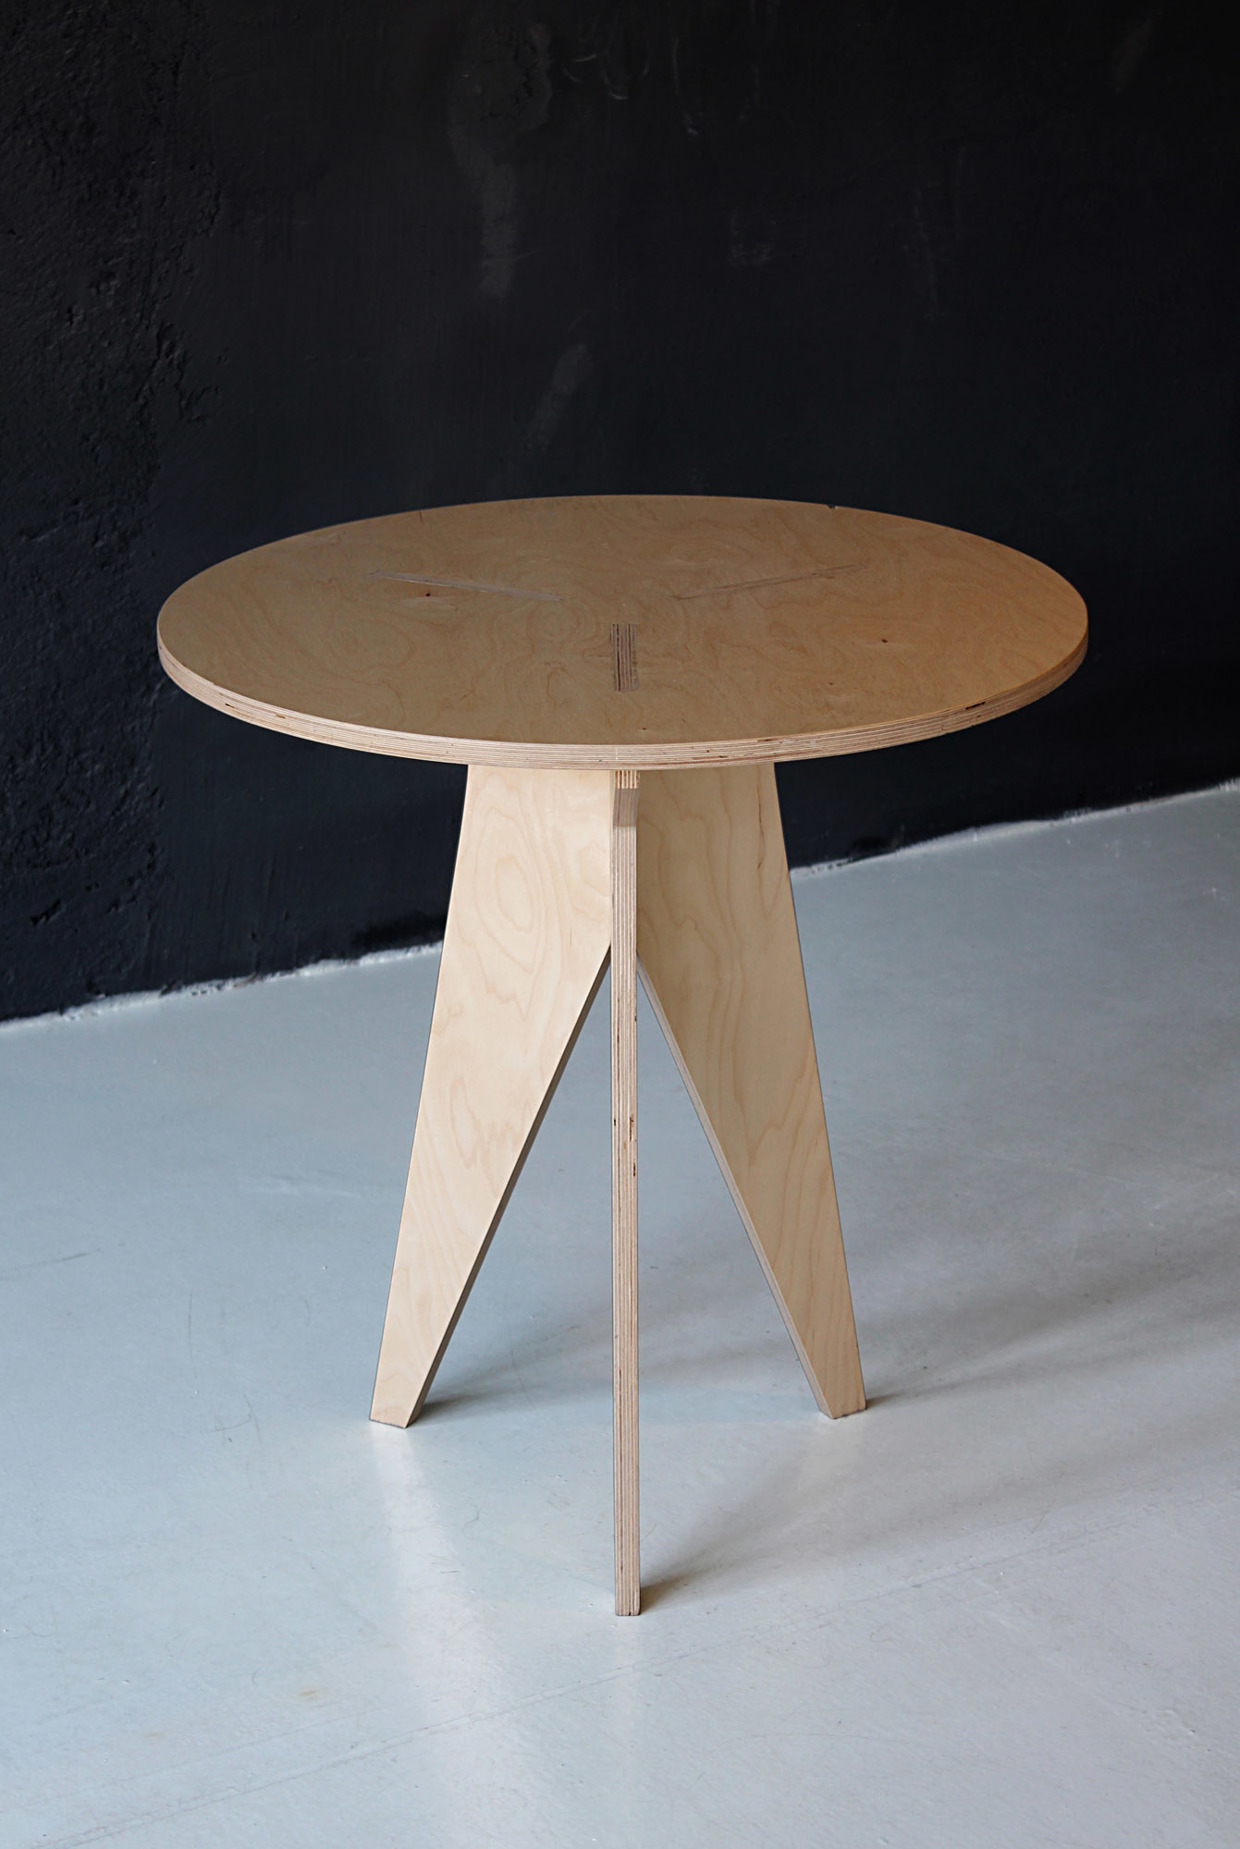 Furniture_P01_Plywood-dontDIY-12